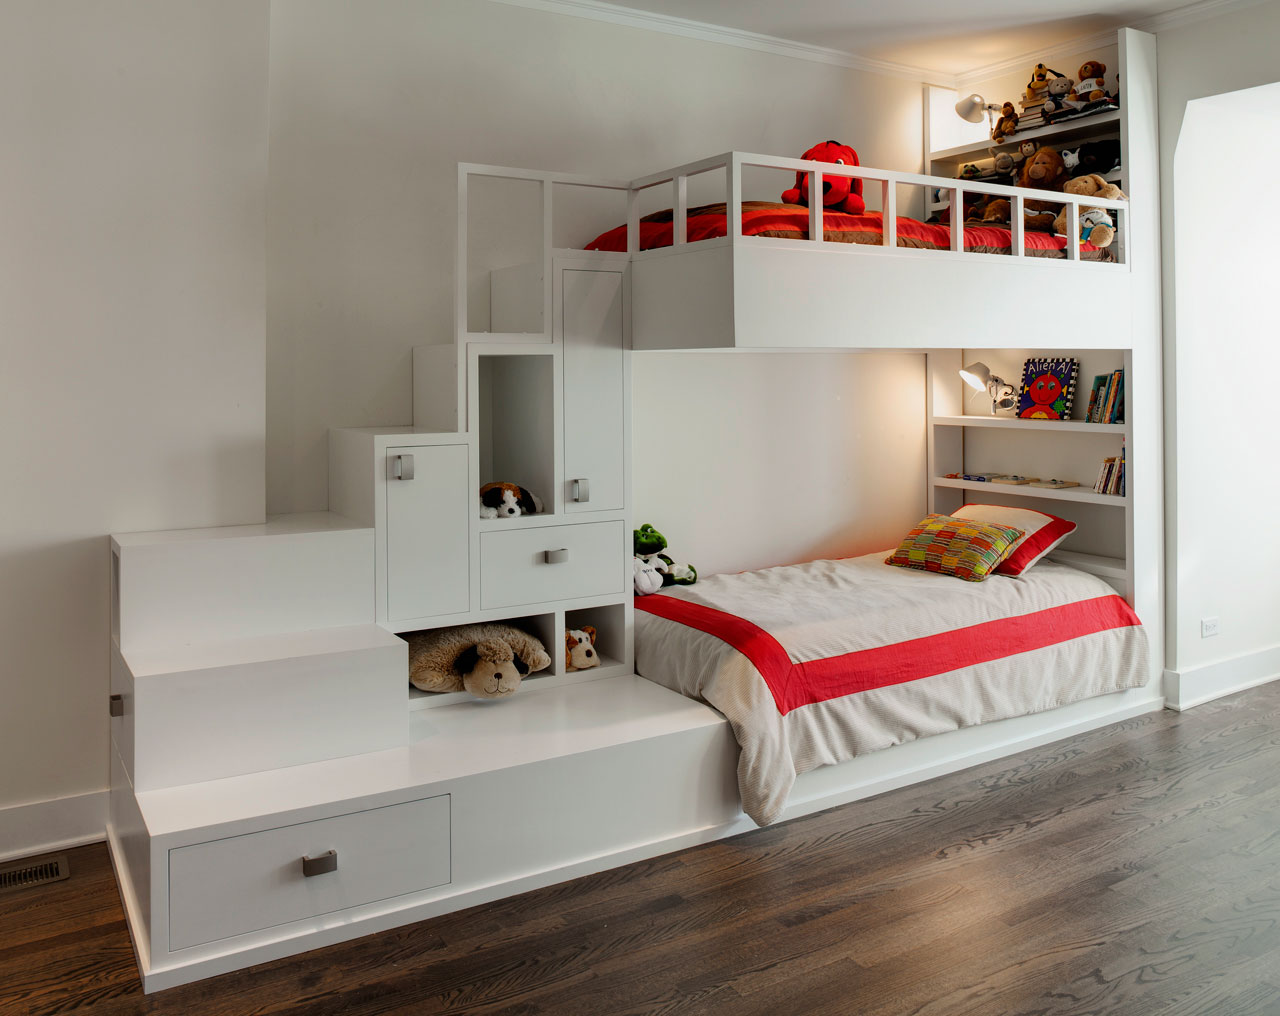 space_bunks